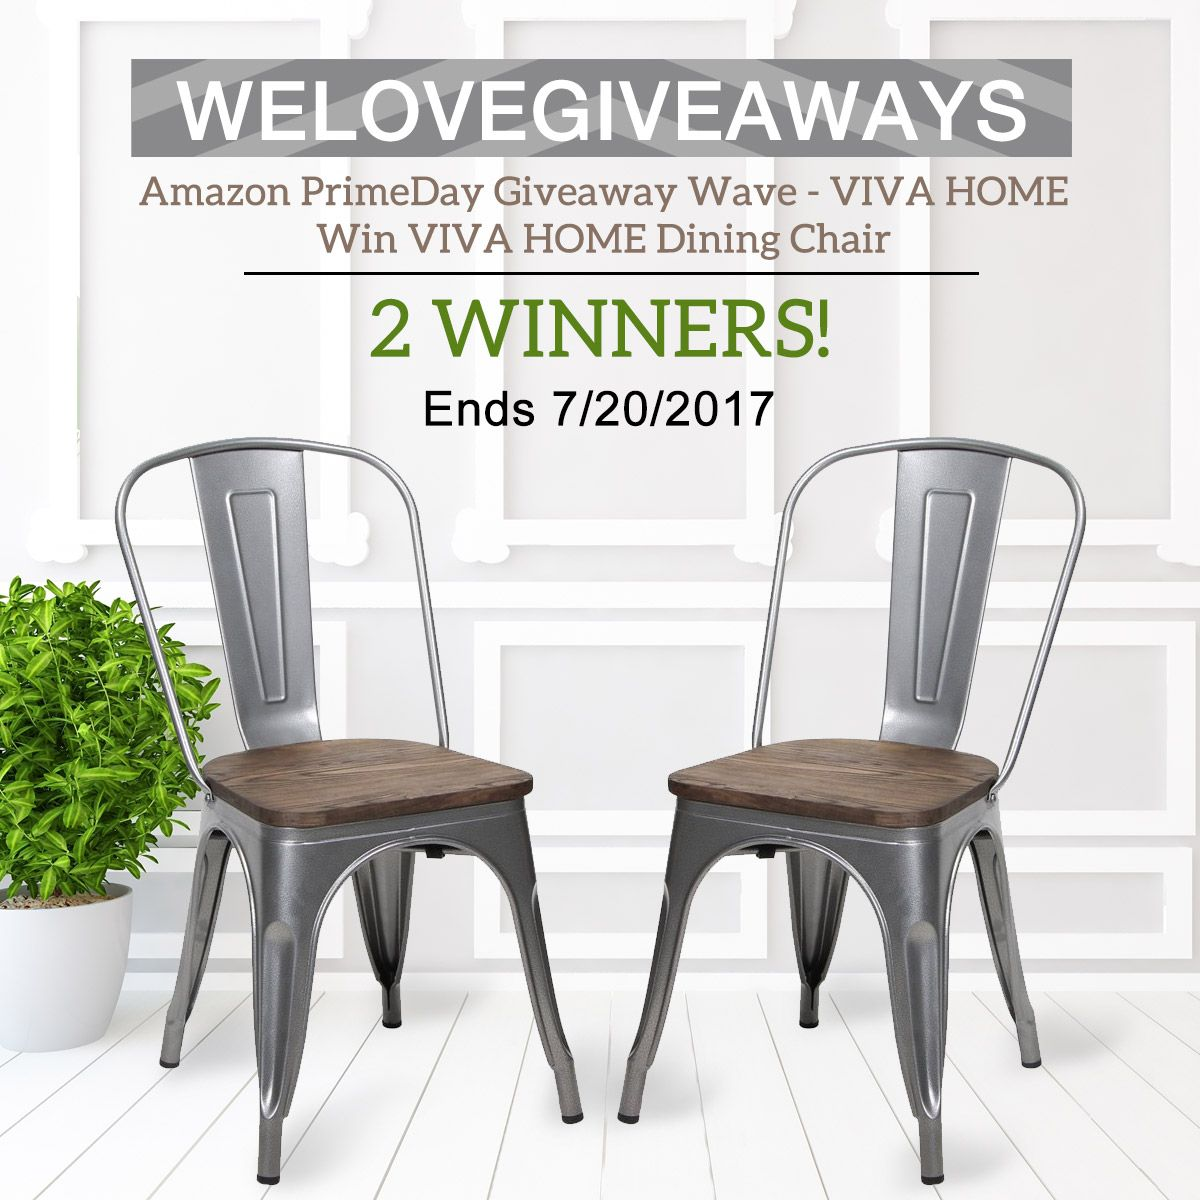 We Love Giveaways #Amazon #PrimeDay #Giveaway Wave - #Viva #Home (End by 7/20/2017) #Win Viva Home #Dining #Chairs #Prize Link: bit.ly/711VHC 2 winners! --------------------------------------------------------------------- 1st, Like We Love Giveaways, Like and share this post, comment with #WeLoveGiveaways #PrimeDay 2nd, Click the link and comment with the color you like more:  bit.ly/711VHC 3rd, Tag your friends who are also interested in them…